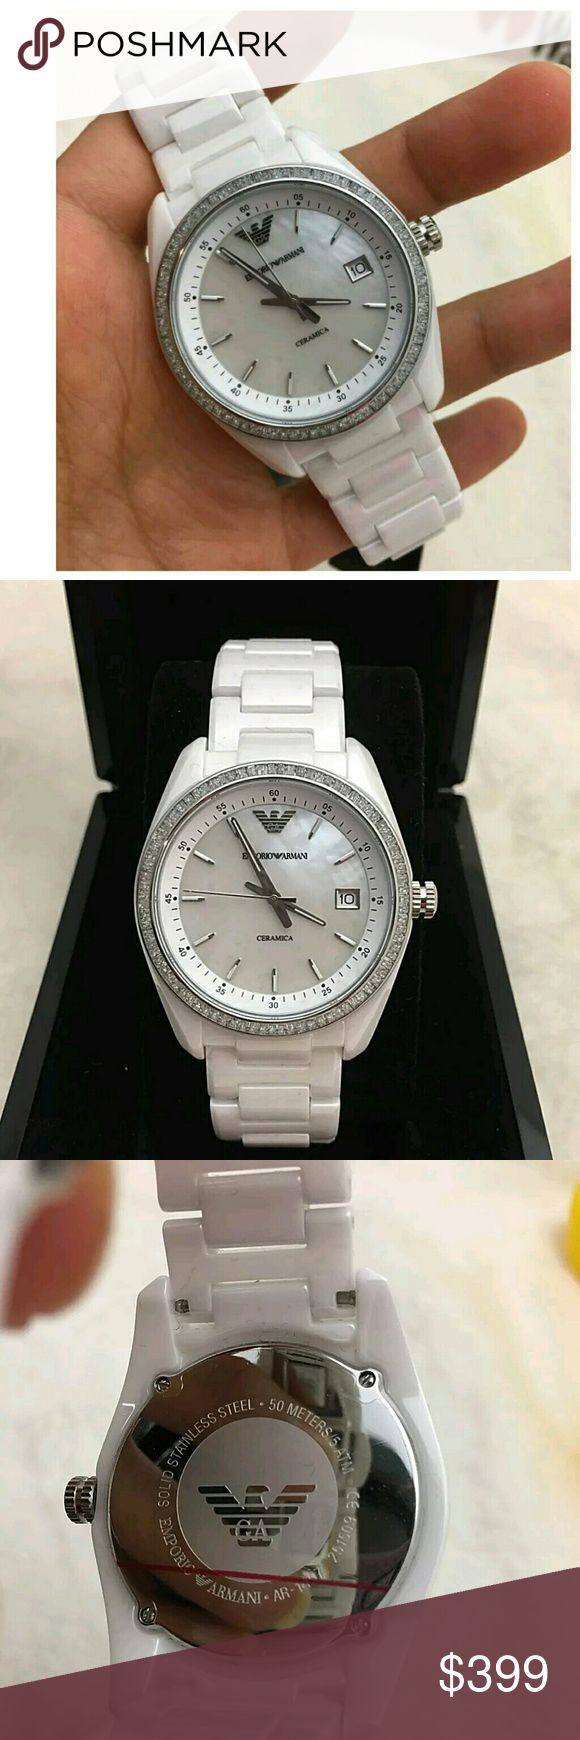 NWT emporio Armani ceramic white watch BRAND NWT EMPORIO ARMANI WHITE CERAMIC CRYSTAL Ladies WATCH.    FIRM PRICE FIRM PRICE FIRM PRICE  $399.00  . AUTHENTIC WATCH  . AUTHENTIC BOX  . AUTHENTIC MANUAL   SHIPPING?  PLEASE ALLOW FEW BUSINESS DAYS FOR ME TO SHIPPED IT OFF.I HAVE TO GET IT FROM MY STORE.    THANK YOU FOR YOUR UNDERSTANDING. Emporio Armani Accessories Watches